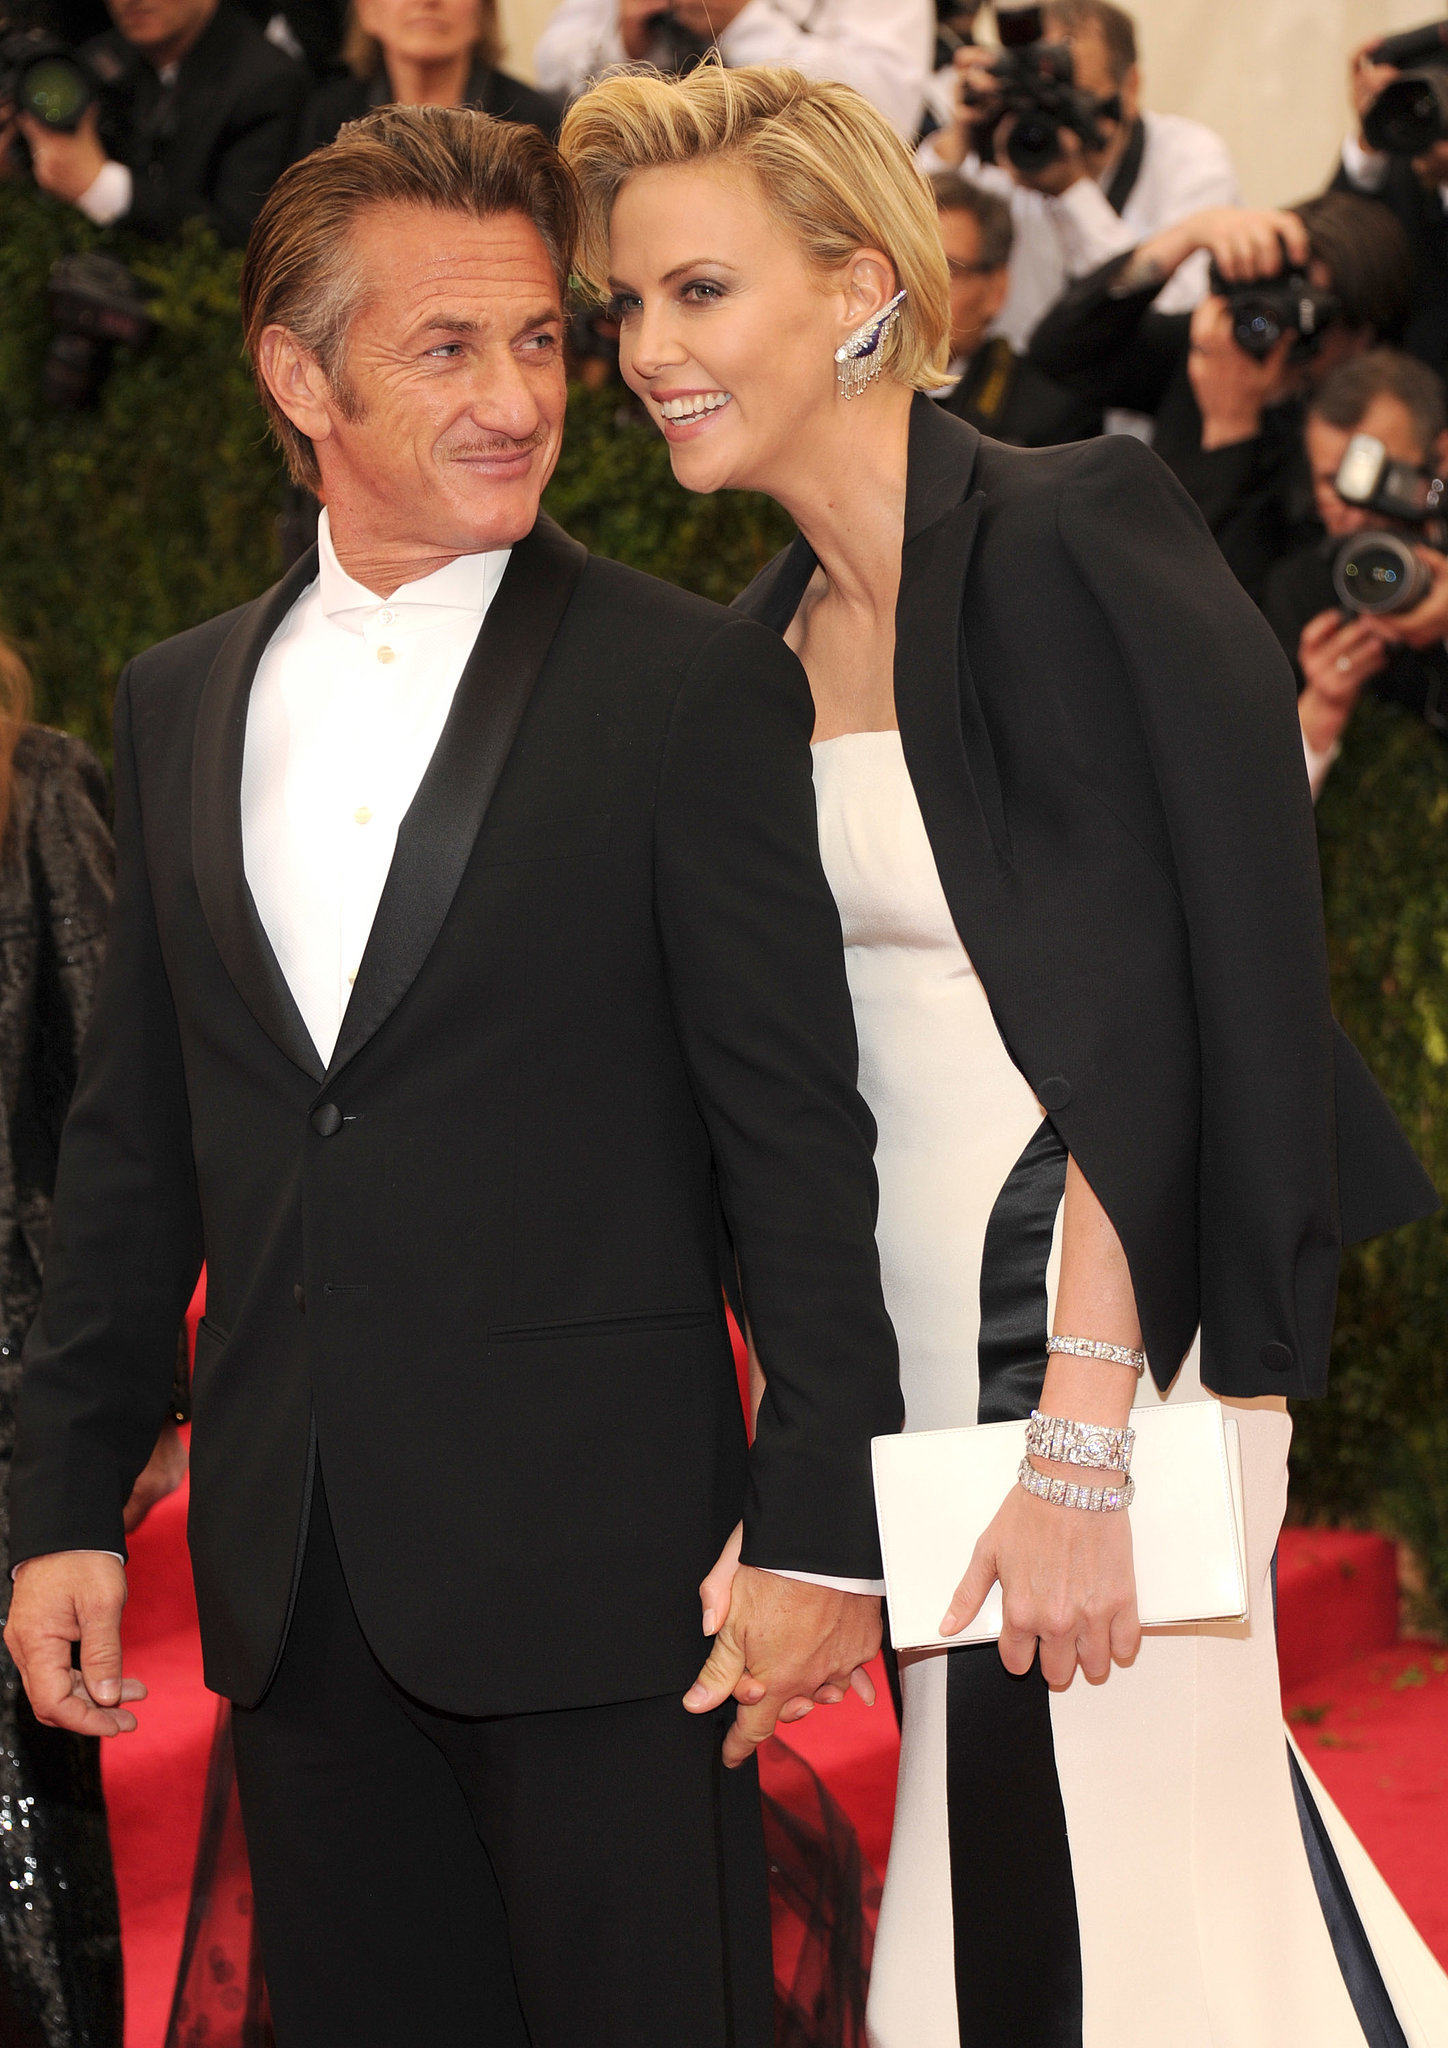 Charlize Theron stuck close to boyfriend Sean Penn on her way into the bash.